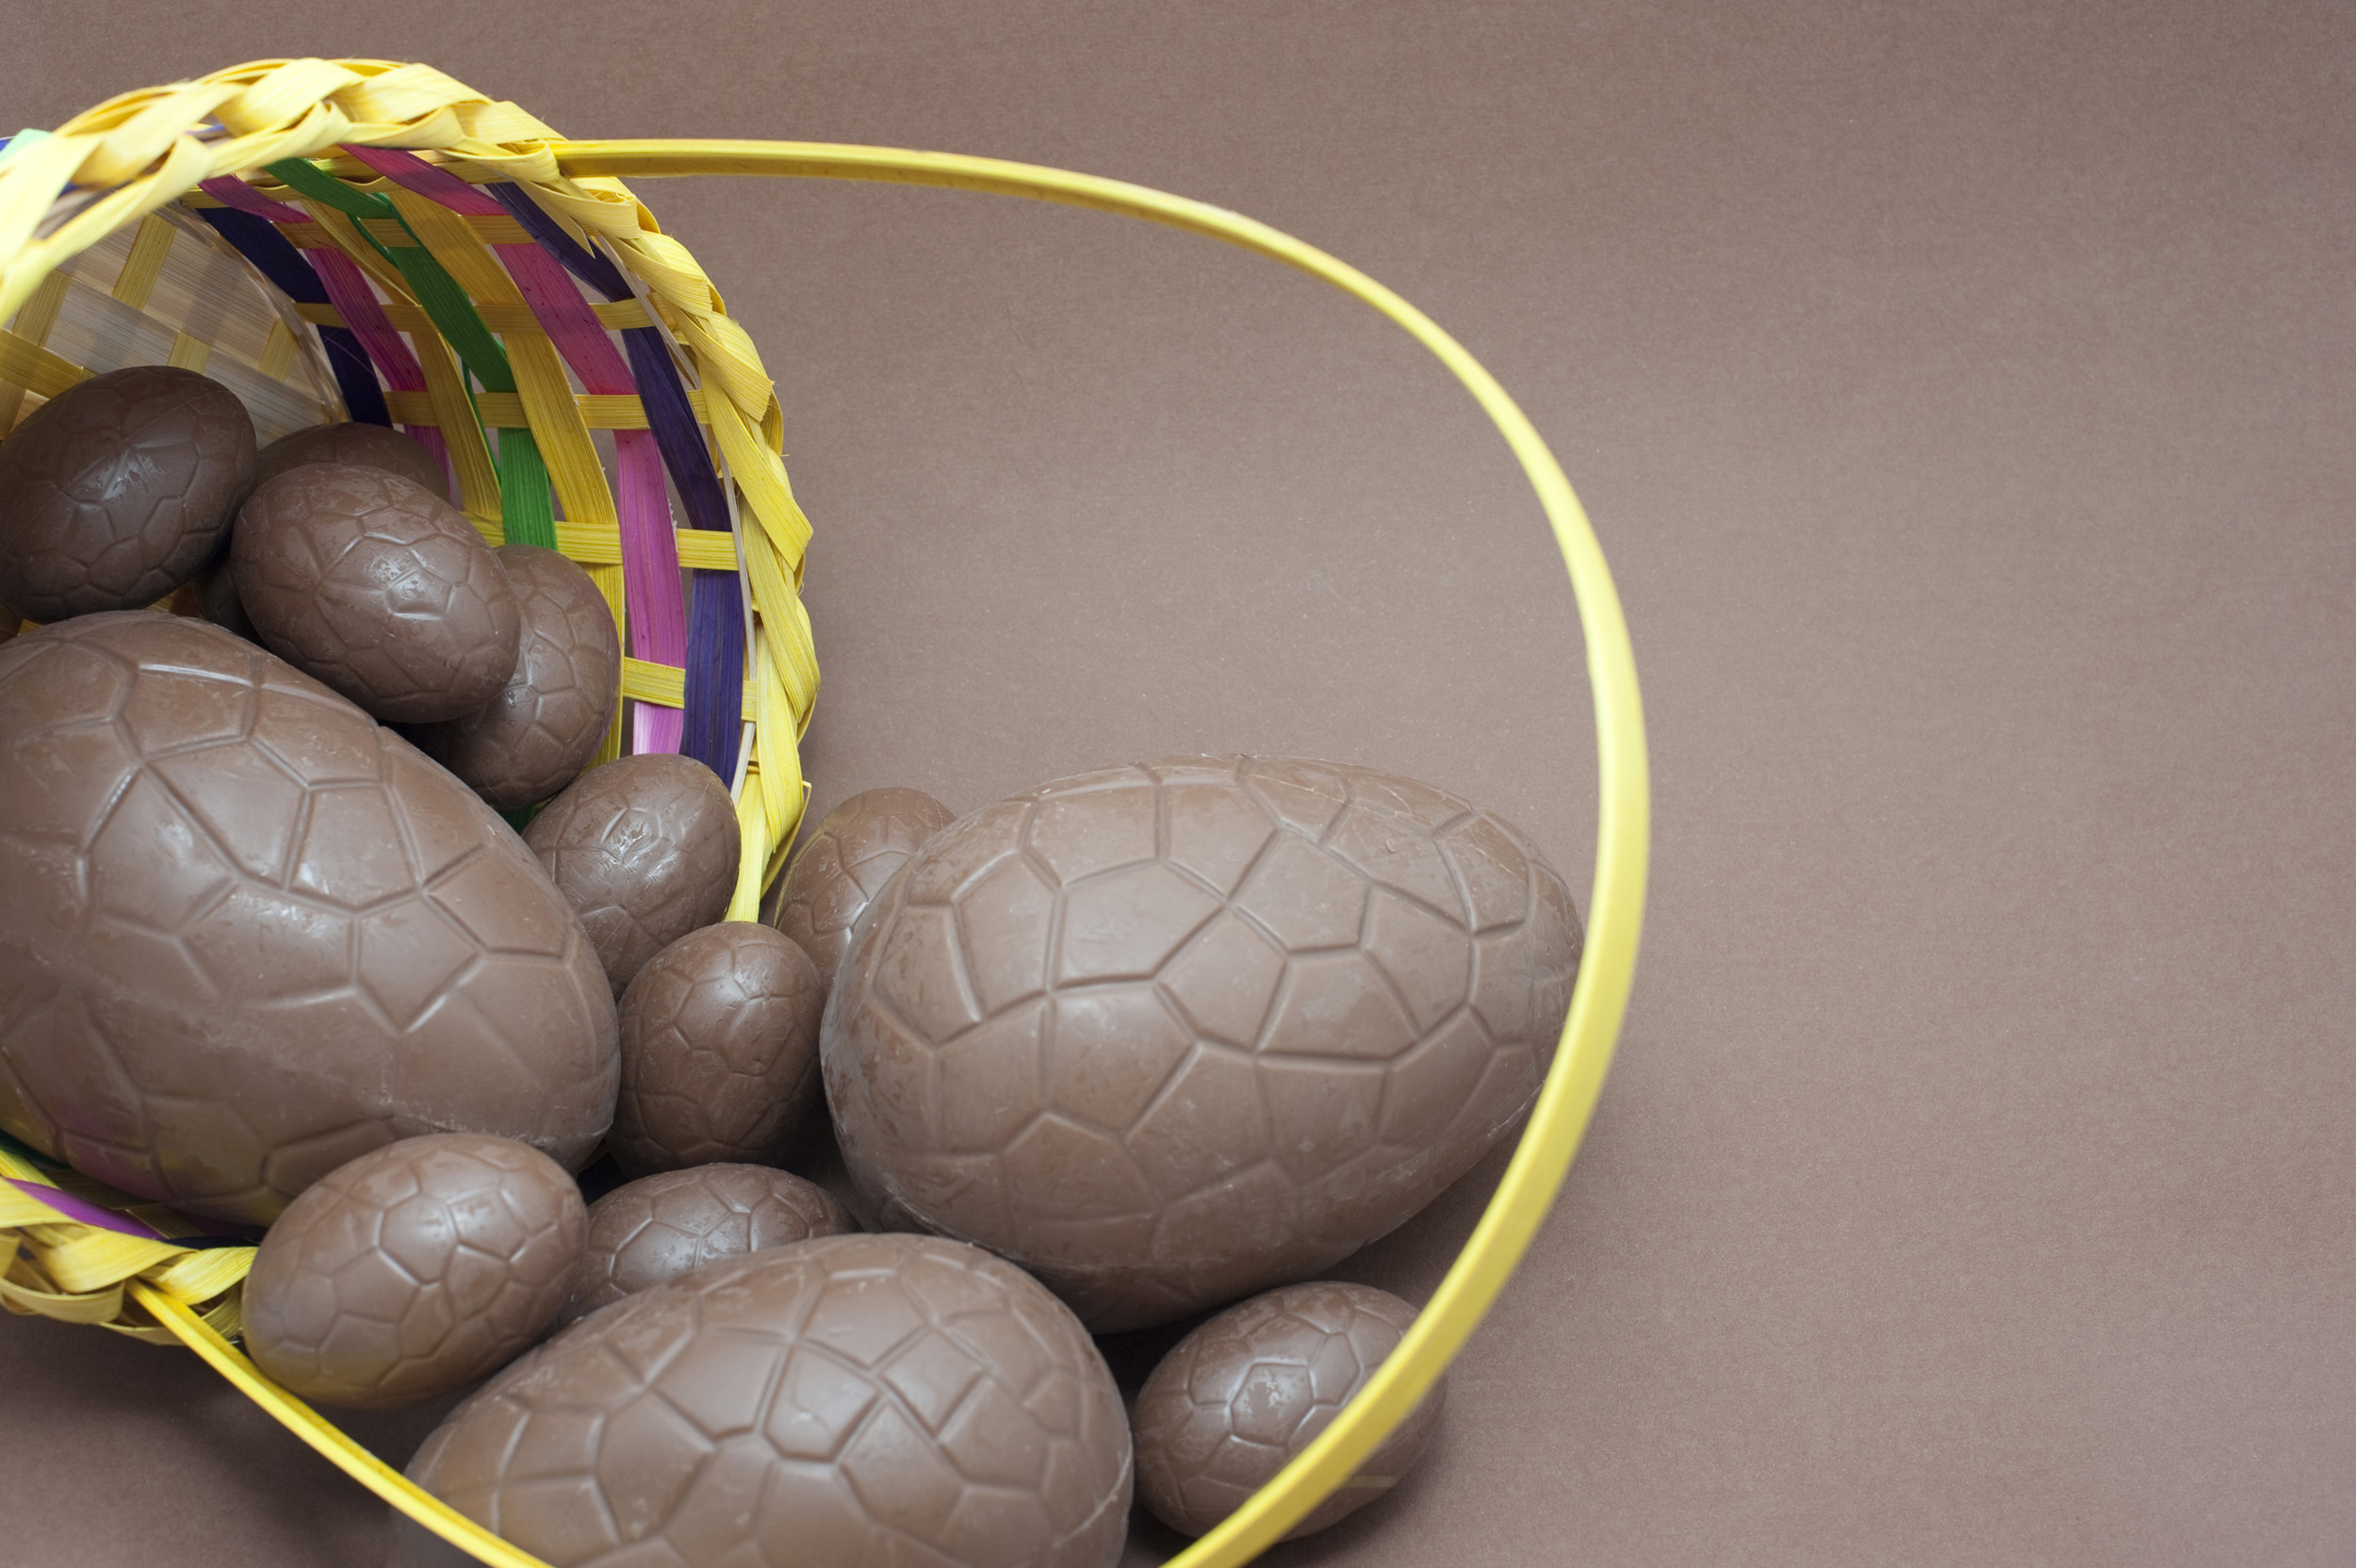 milk_chocolate_eggs.jpg - Milk chocolate Easter Eggs spilling out of a basket onto a brown background with copyspace